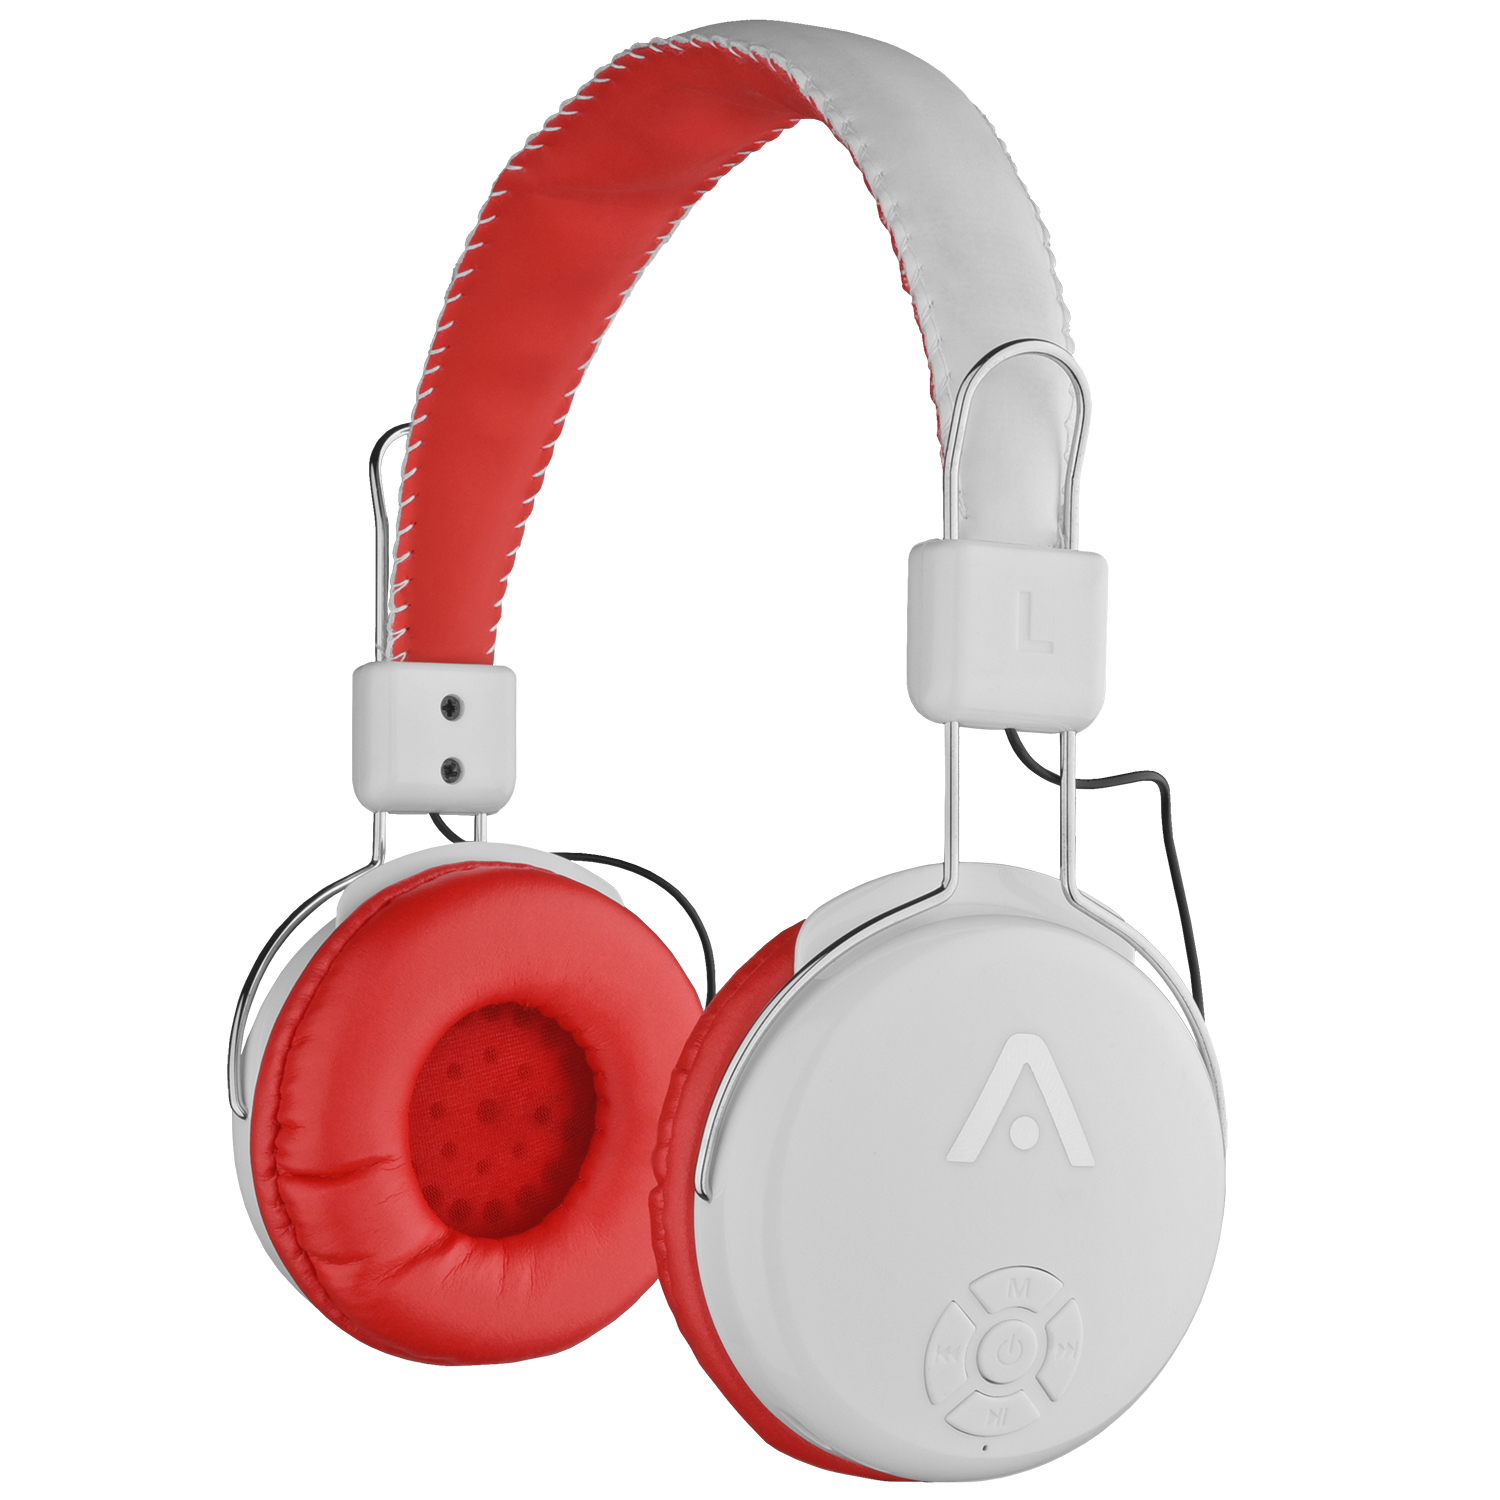 audiomate a21 wireless bluetooth headphones with fm radio and microphone ebay. Black Bedroom Furniture Sets. Home Design Ideas